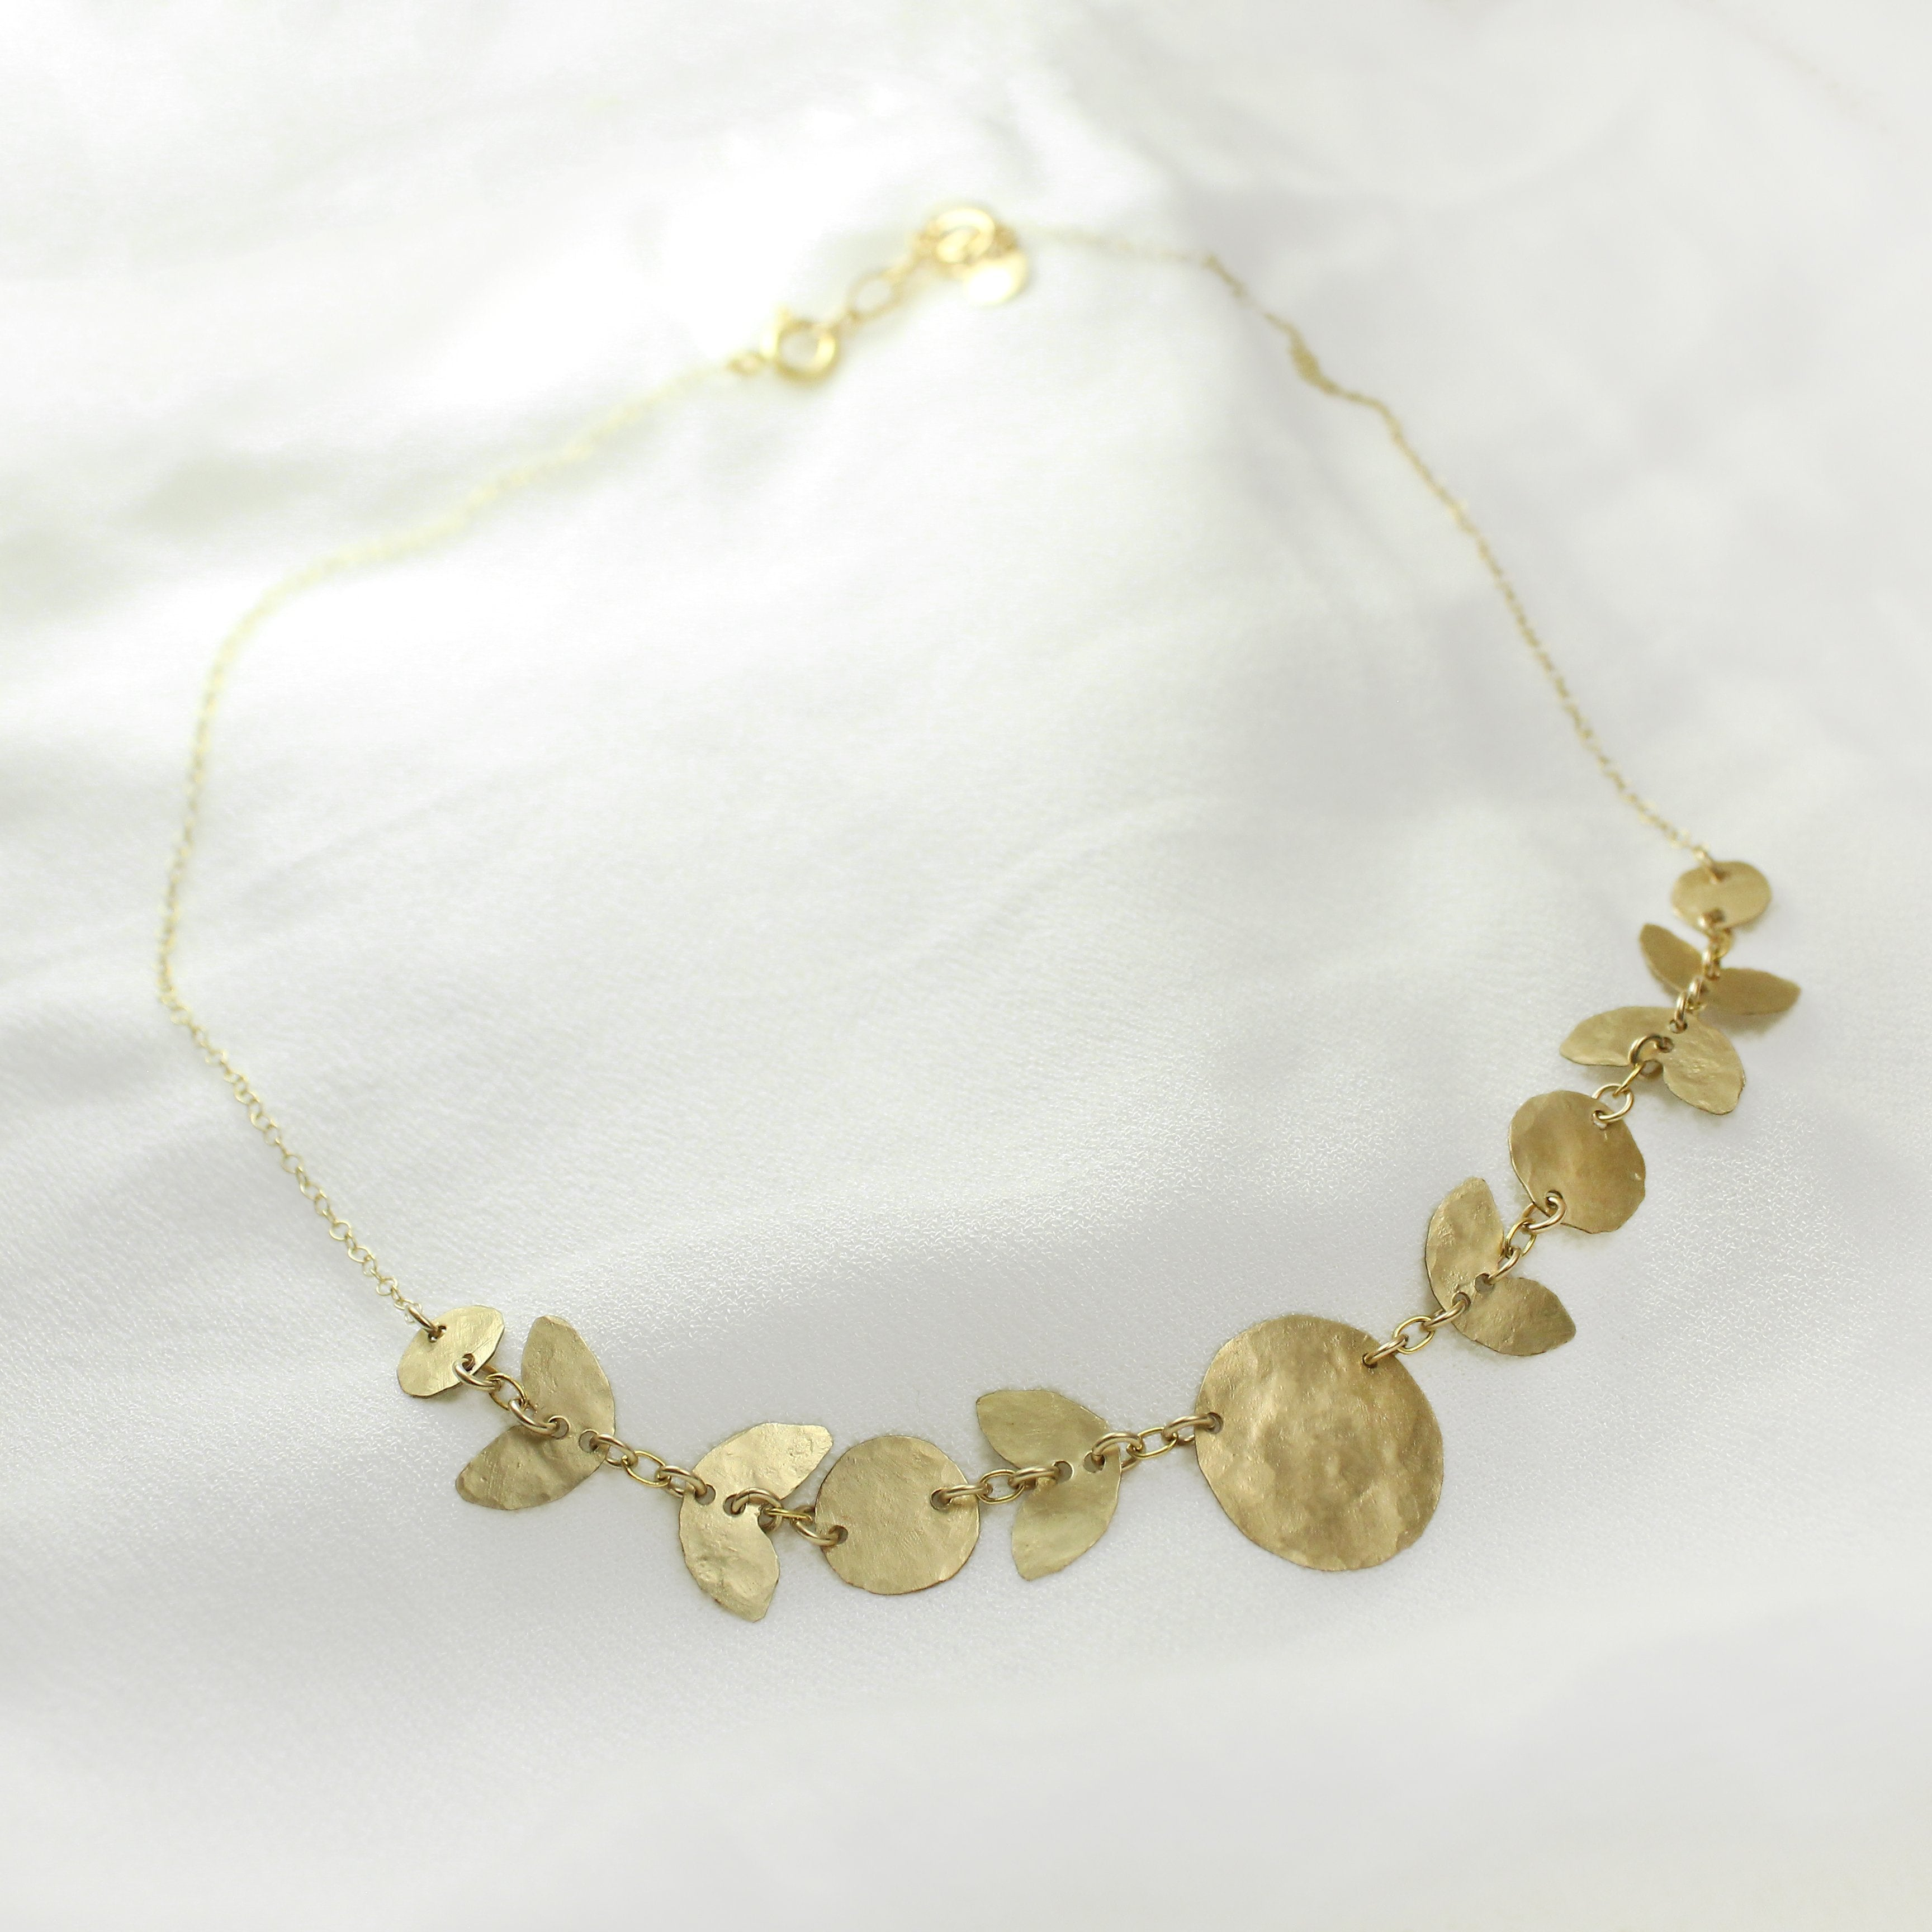 Ancient Egyptian Necklace (Gold filled/Silver) - Shulamit Kanter